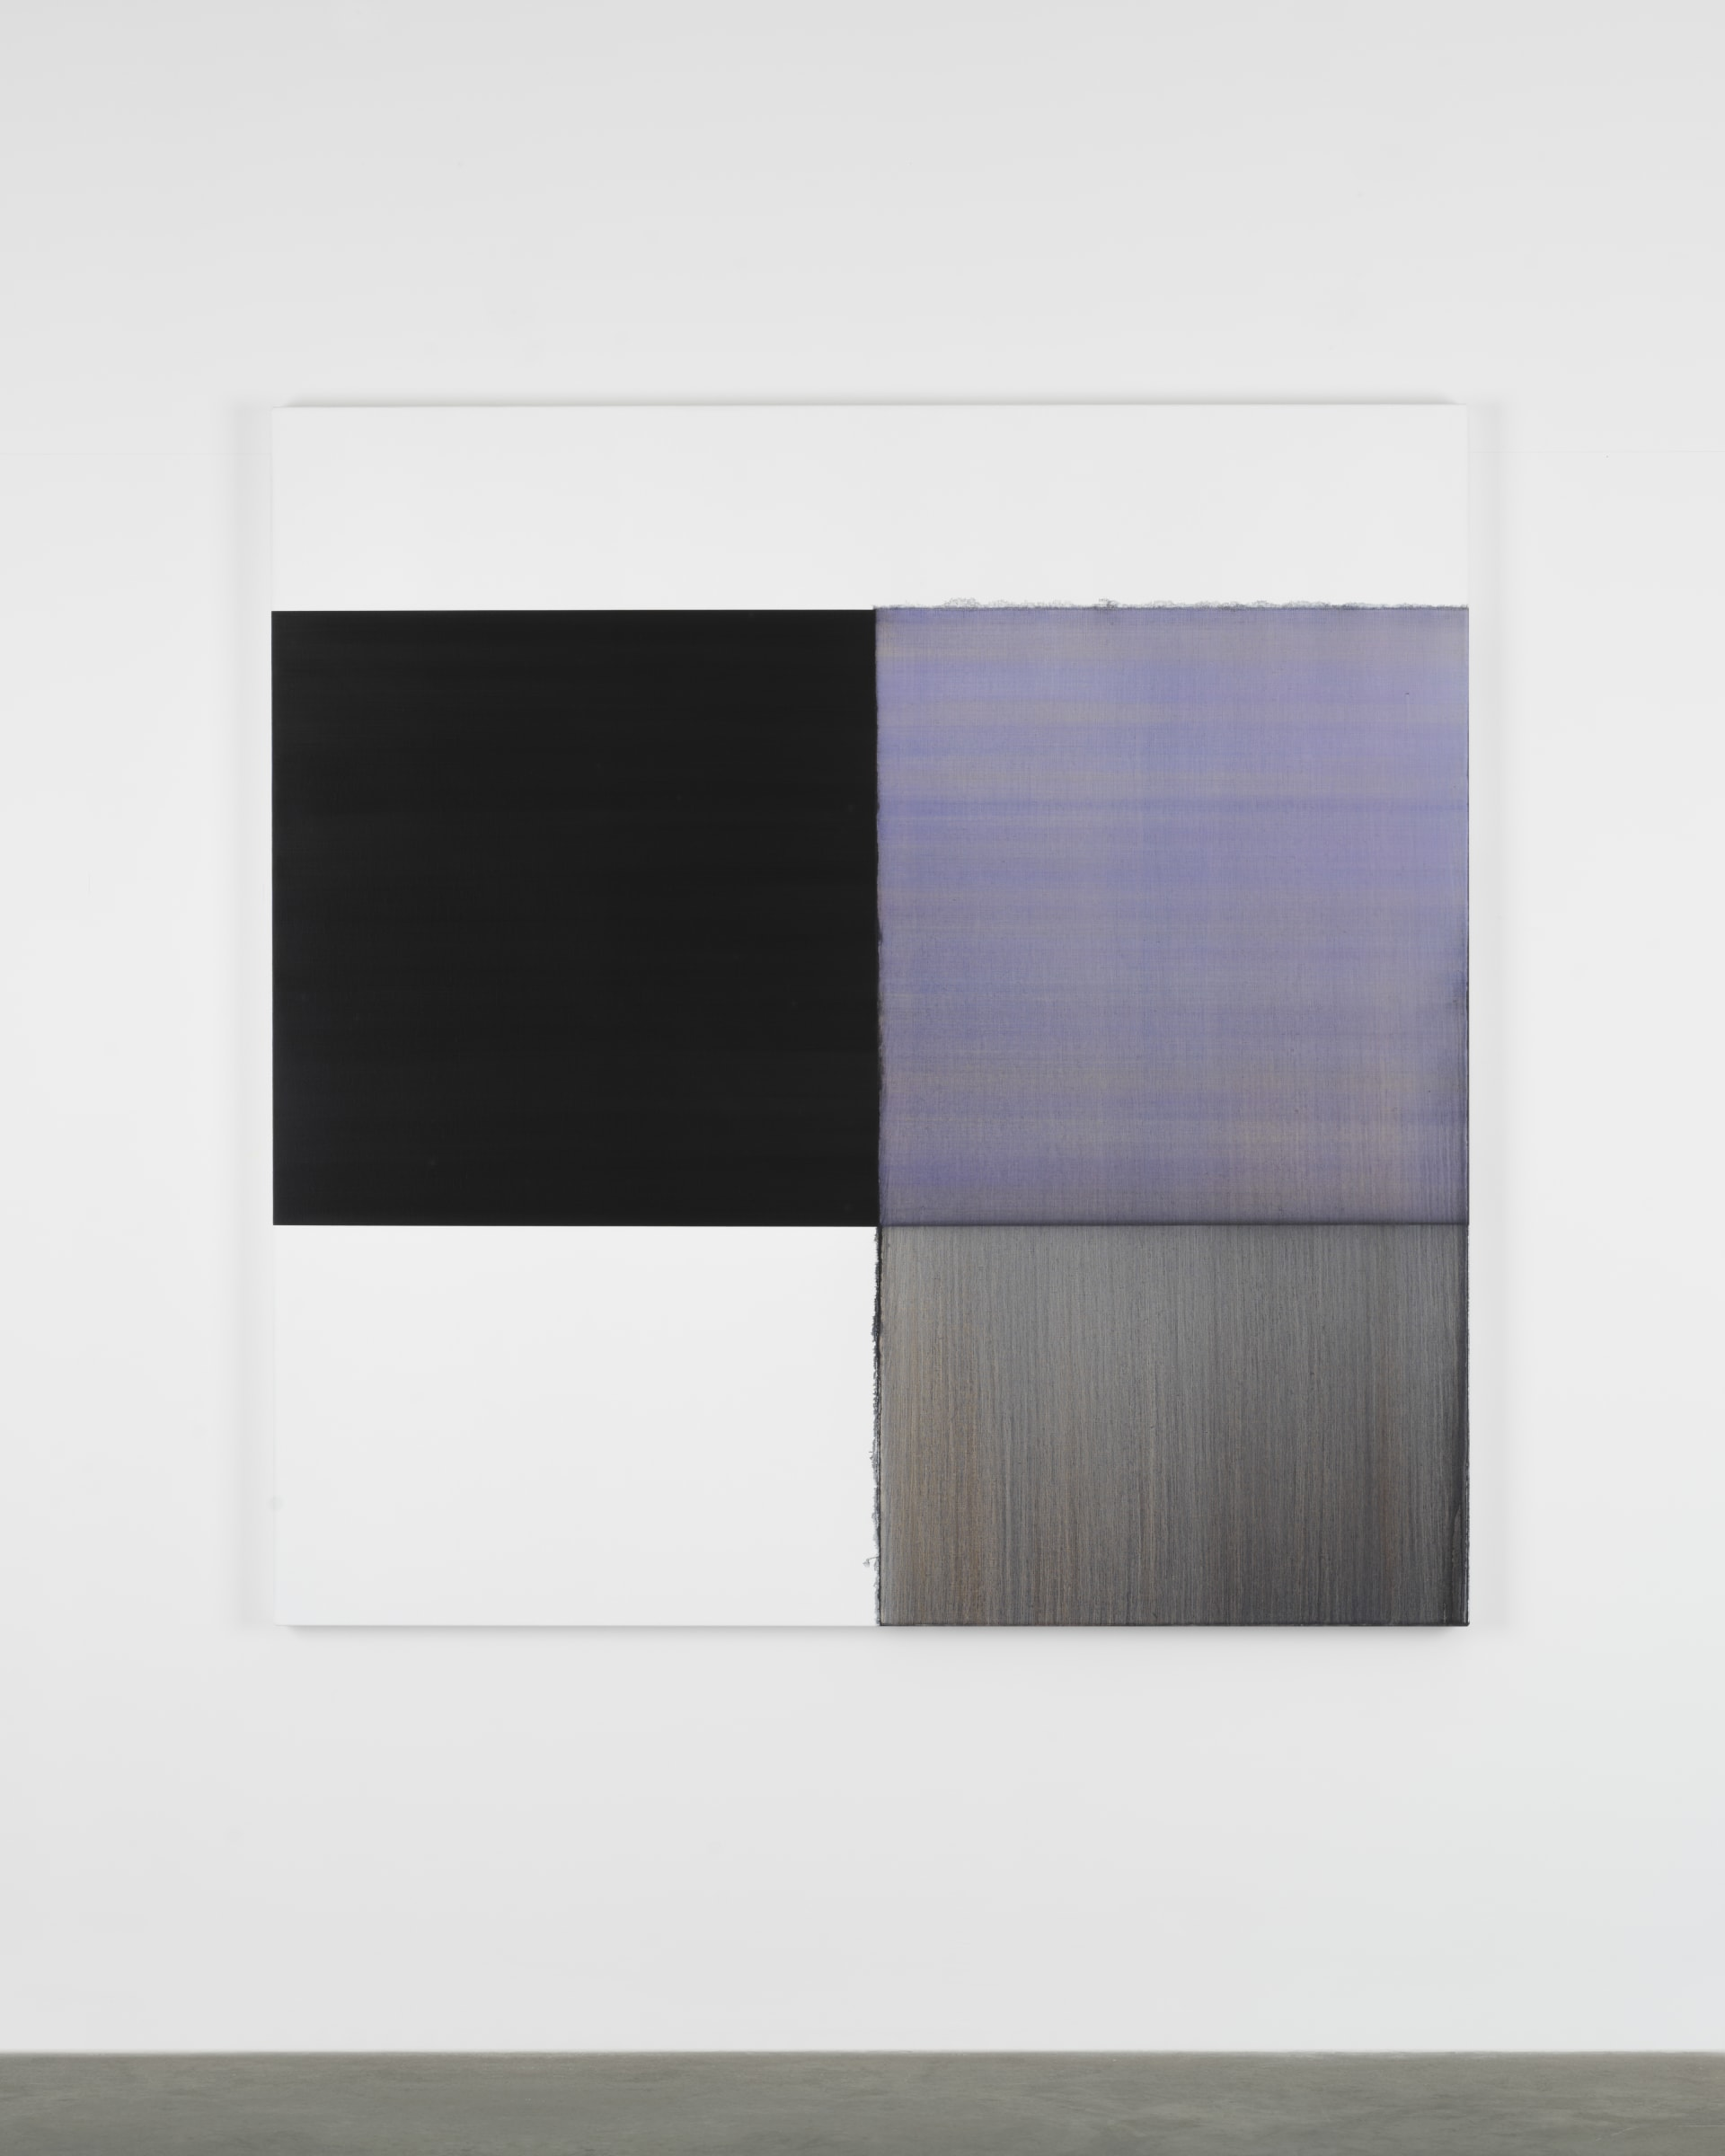 "<span class=""link fancybox-details-link""><a href=""/artists/33-callum-innes/works/16313/"">View Detail Page</a></span><div class=""artist""><strong>CALLUM INNES</strong></div> <div class=""title""><em>Exposed Painting Blue Violet</em>, 2019</div> <div class=""medium"">oil on linen</div> <div class=""dimensions"">160 x 157 cm<br /> 63 x 61 3/4 in</div><div class=""copyright_line"">Copyright The Artist</div>"